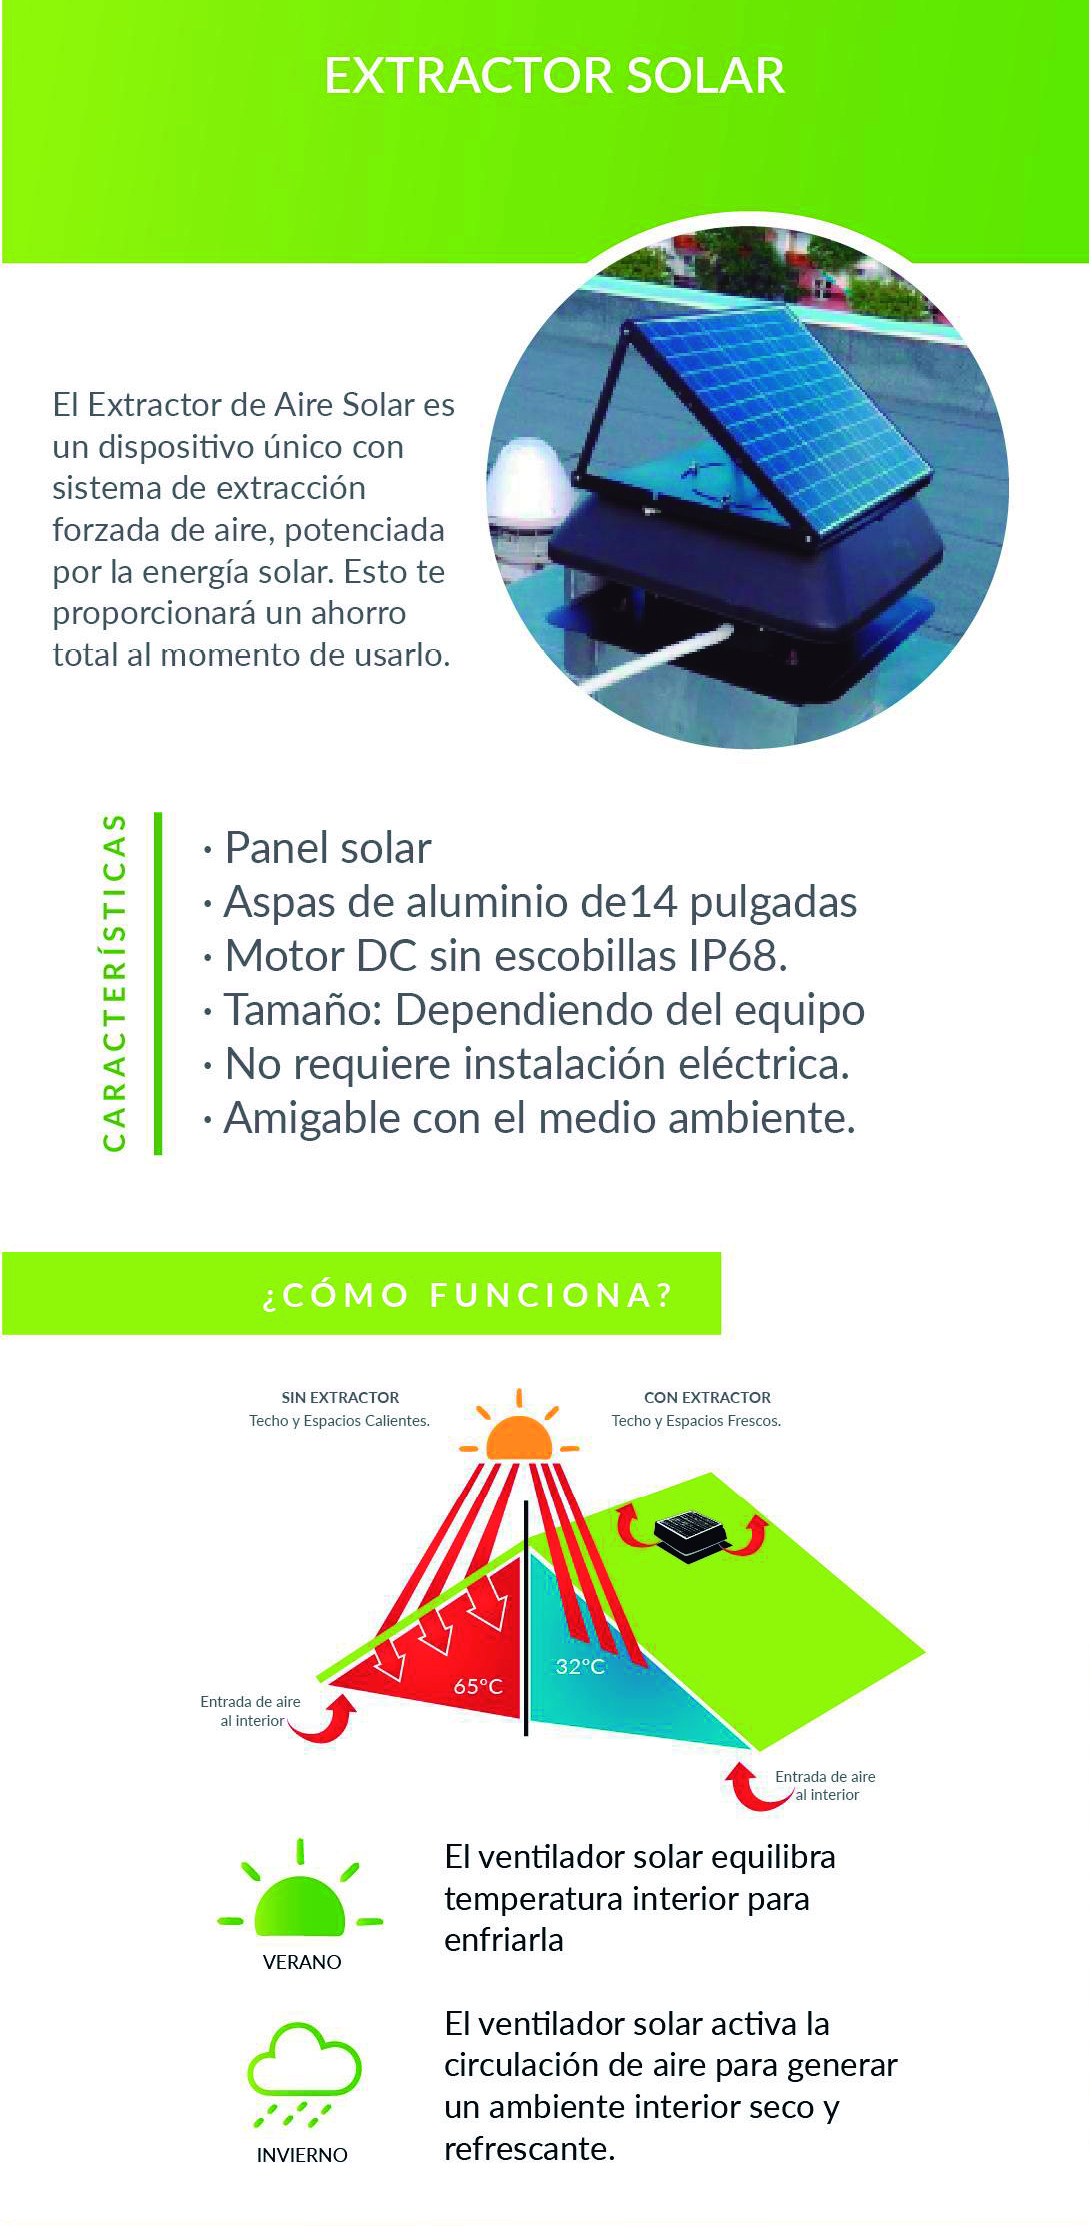 descripcion_extractor_solar_greenfan.jpg